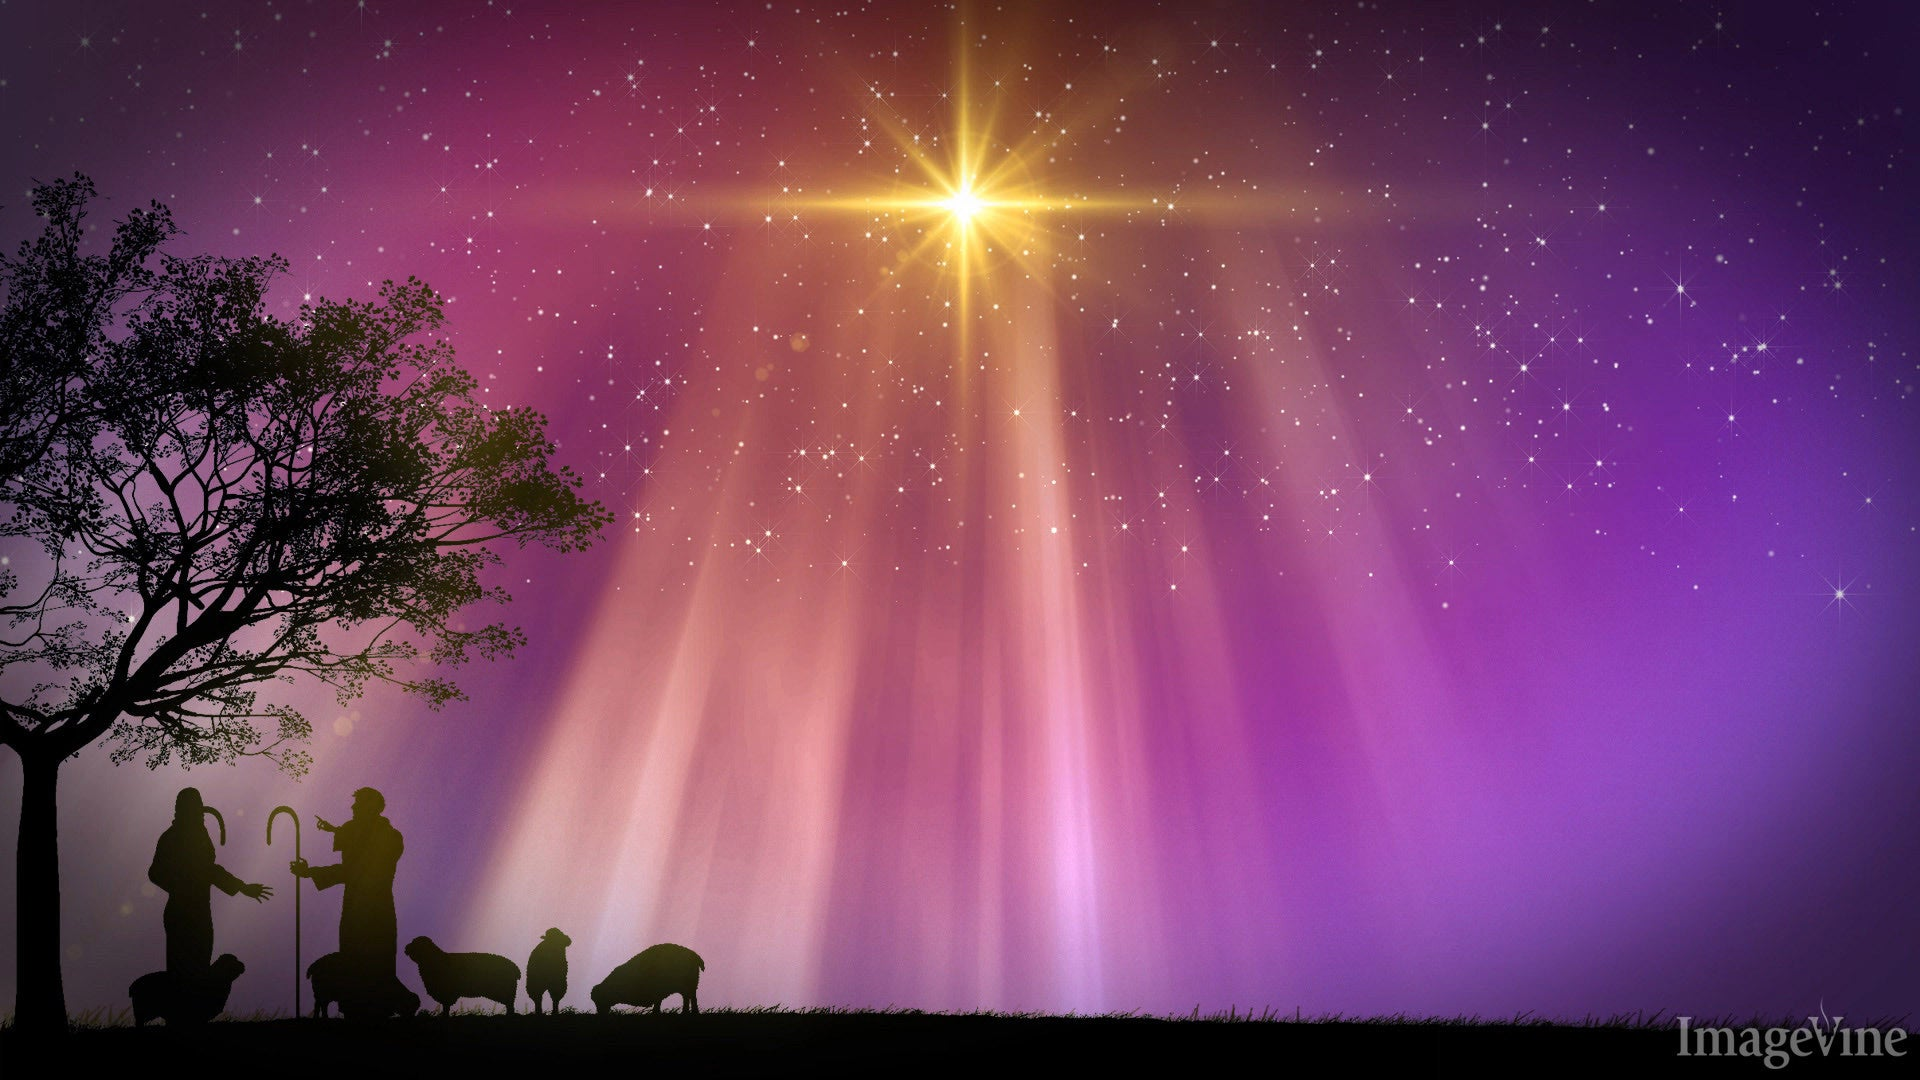 Christian Christmas Backgrounds, Images and Mini Movies ...